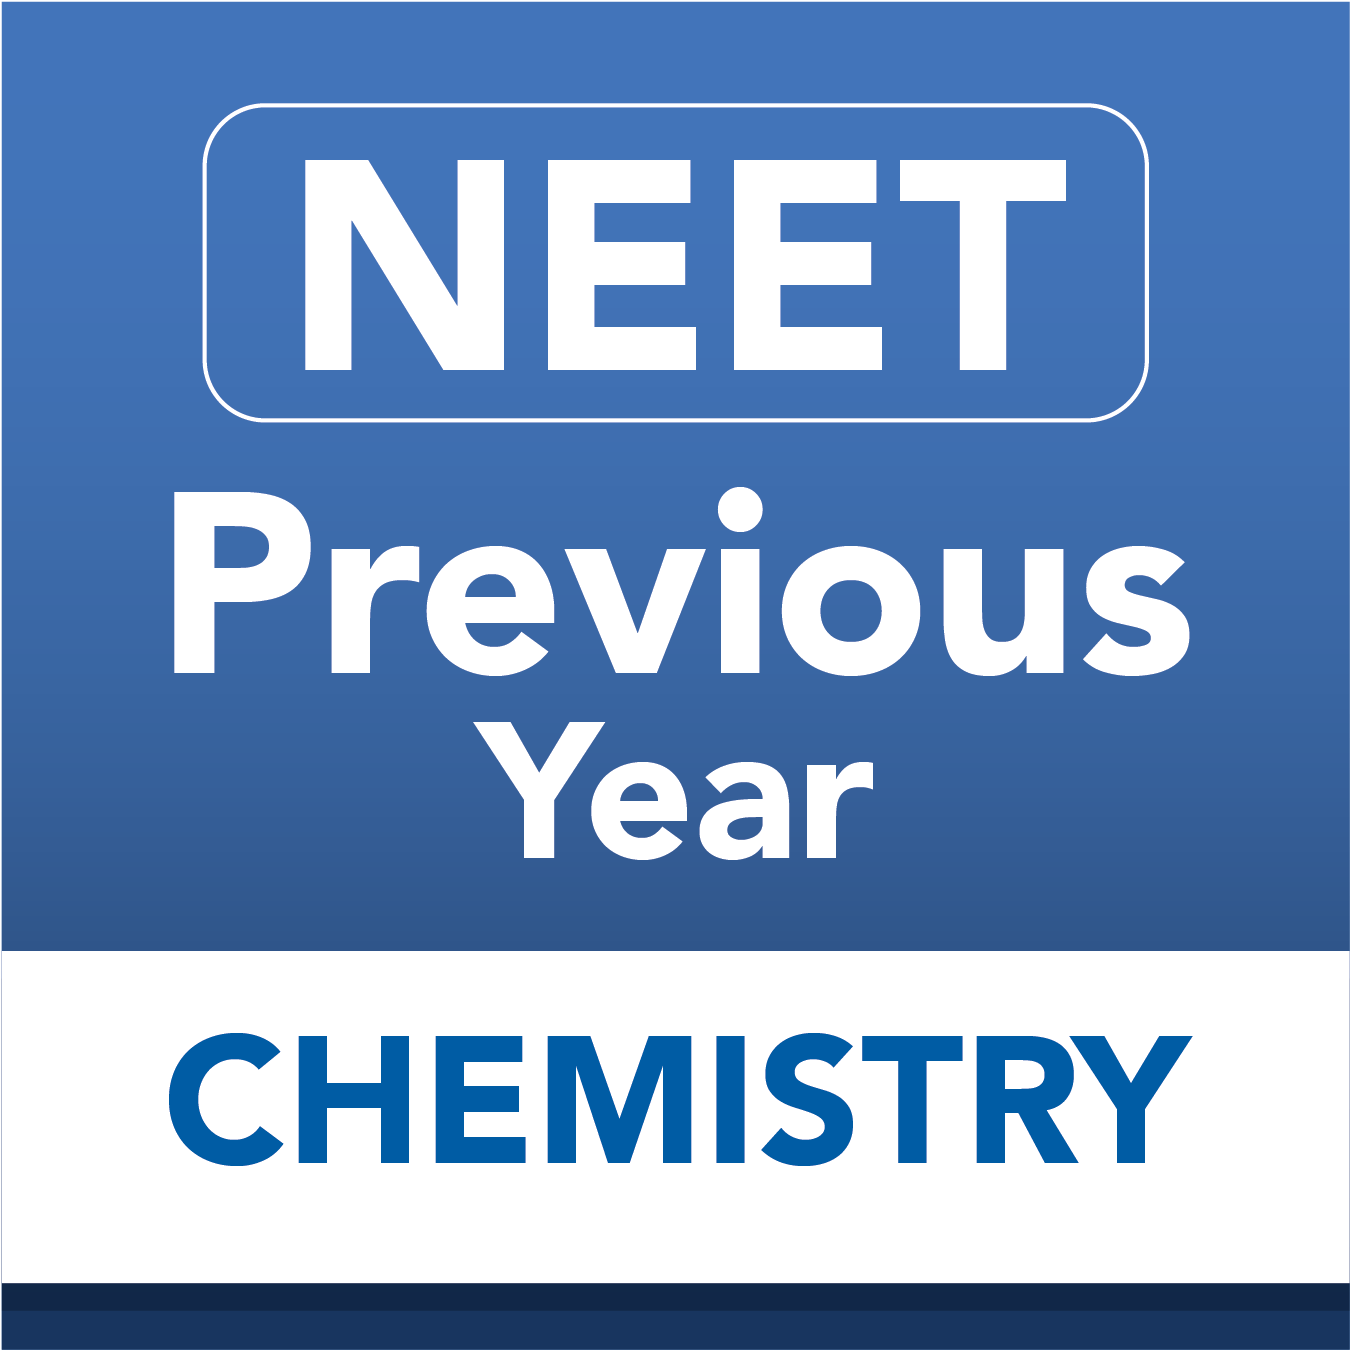 Neet previous chemistry